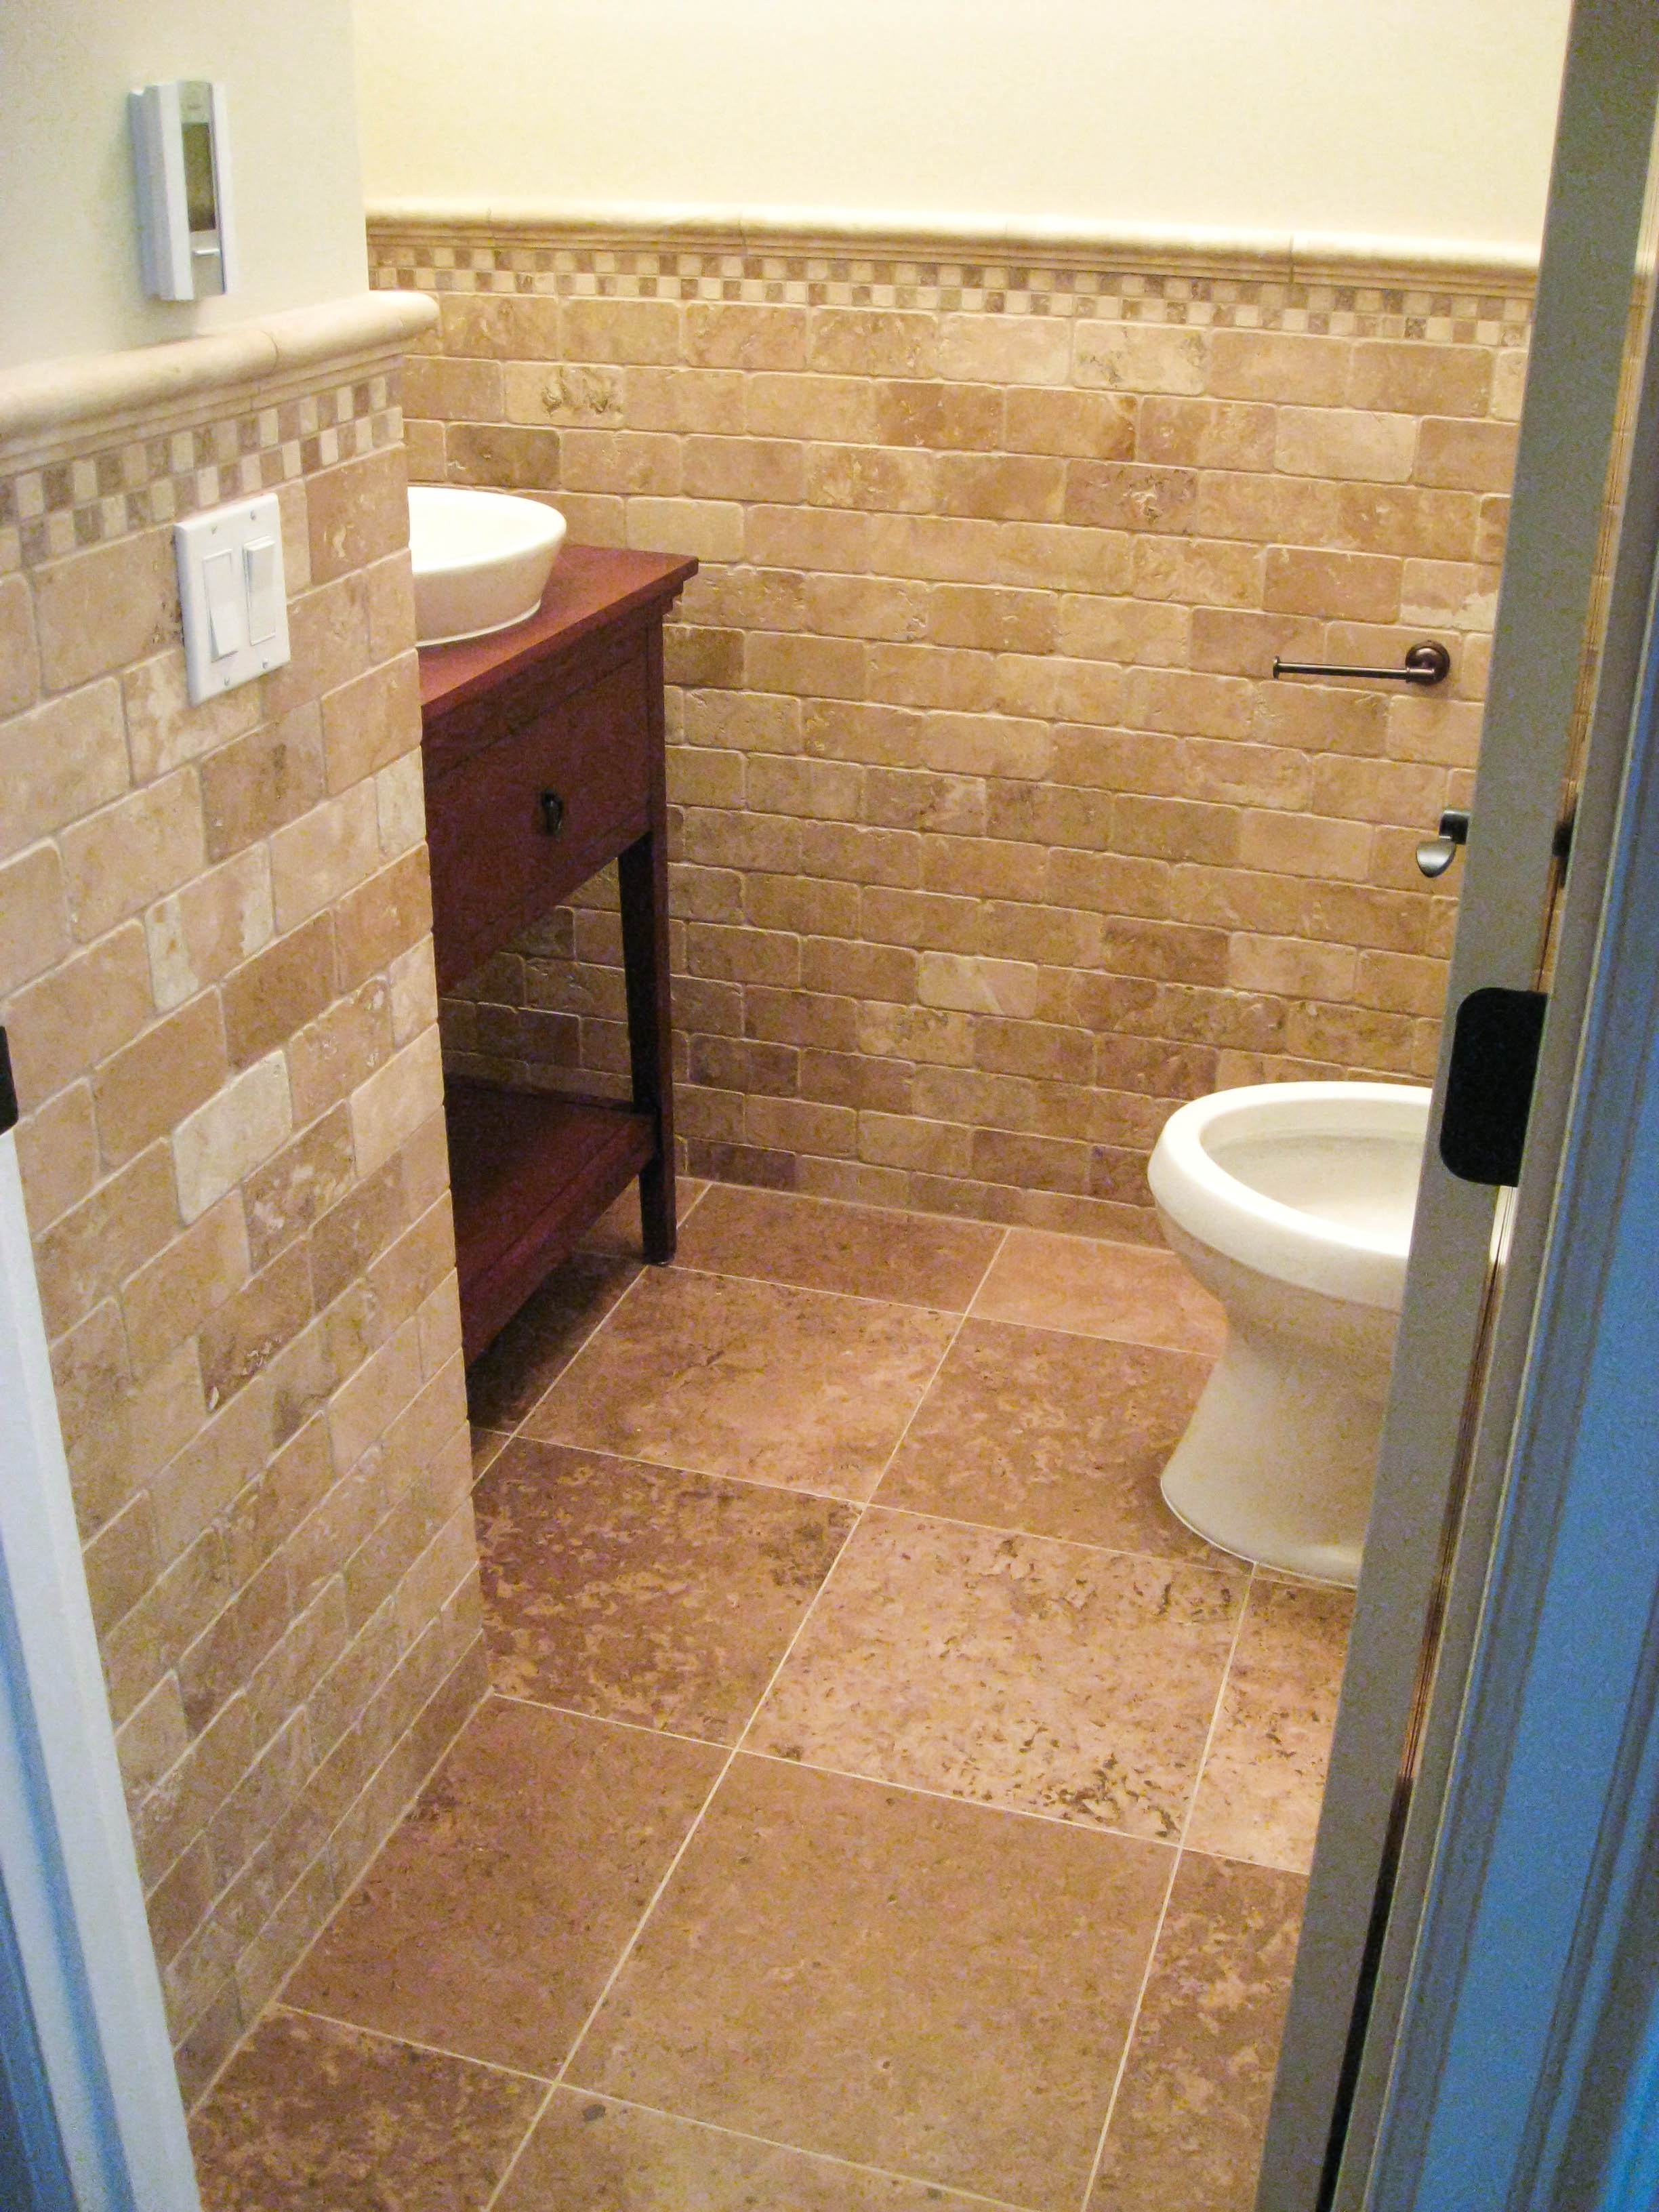 Ceramic Tile Bathroom Bathroom Wainscoting Gallery Tile Contractor Irc Tiles Services